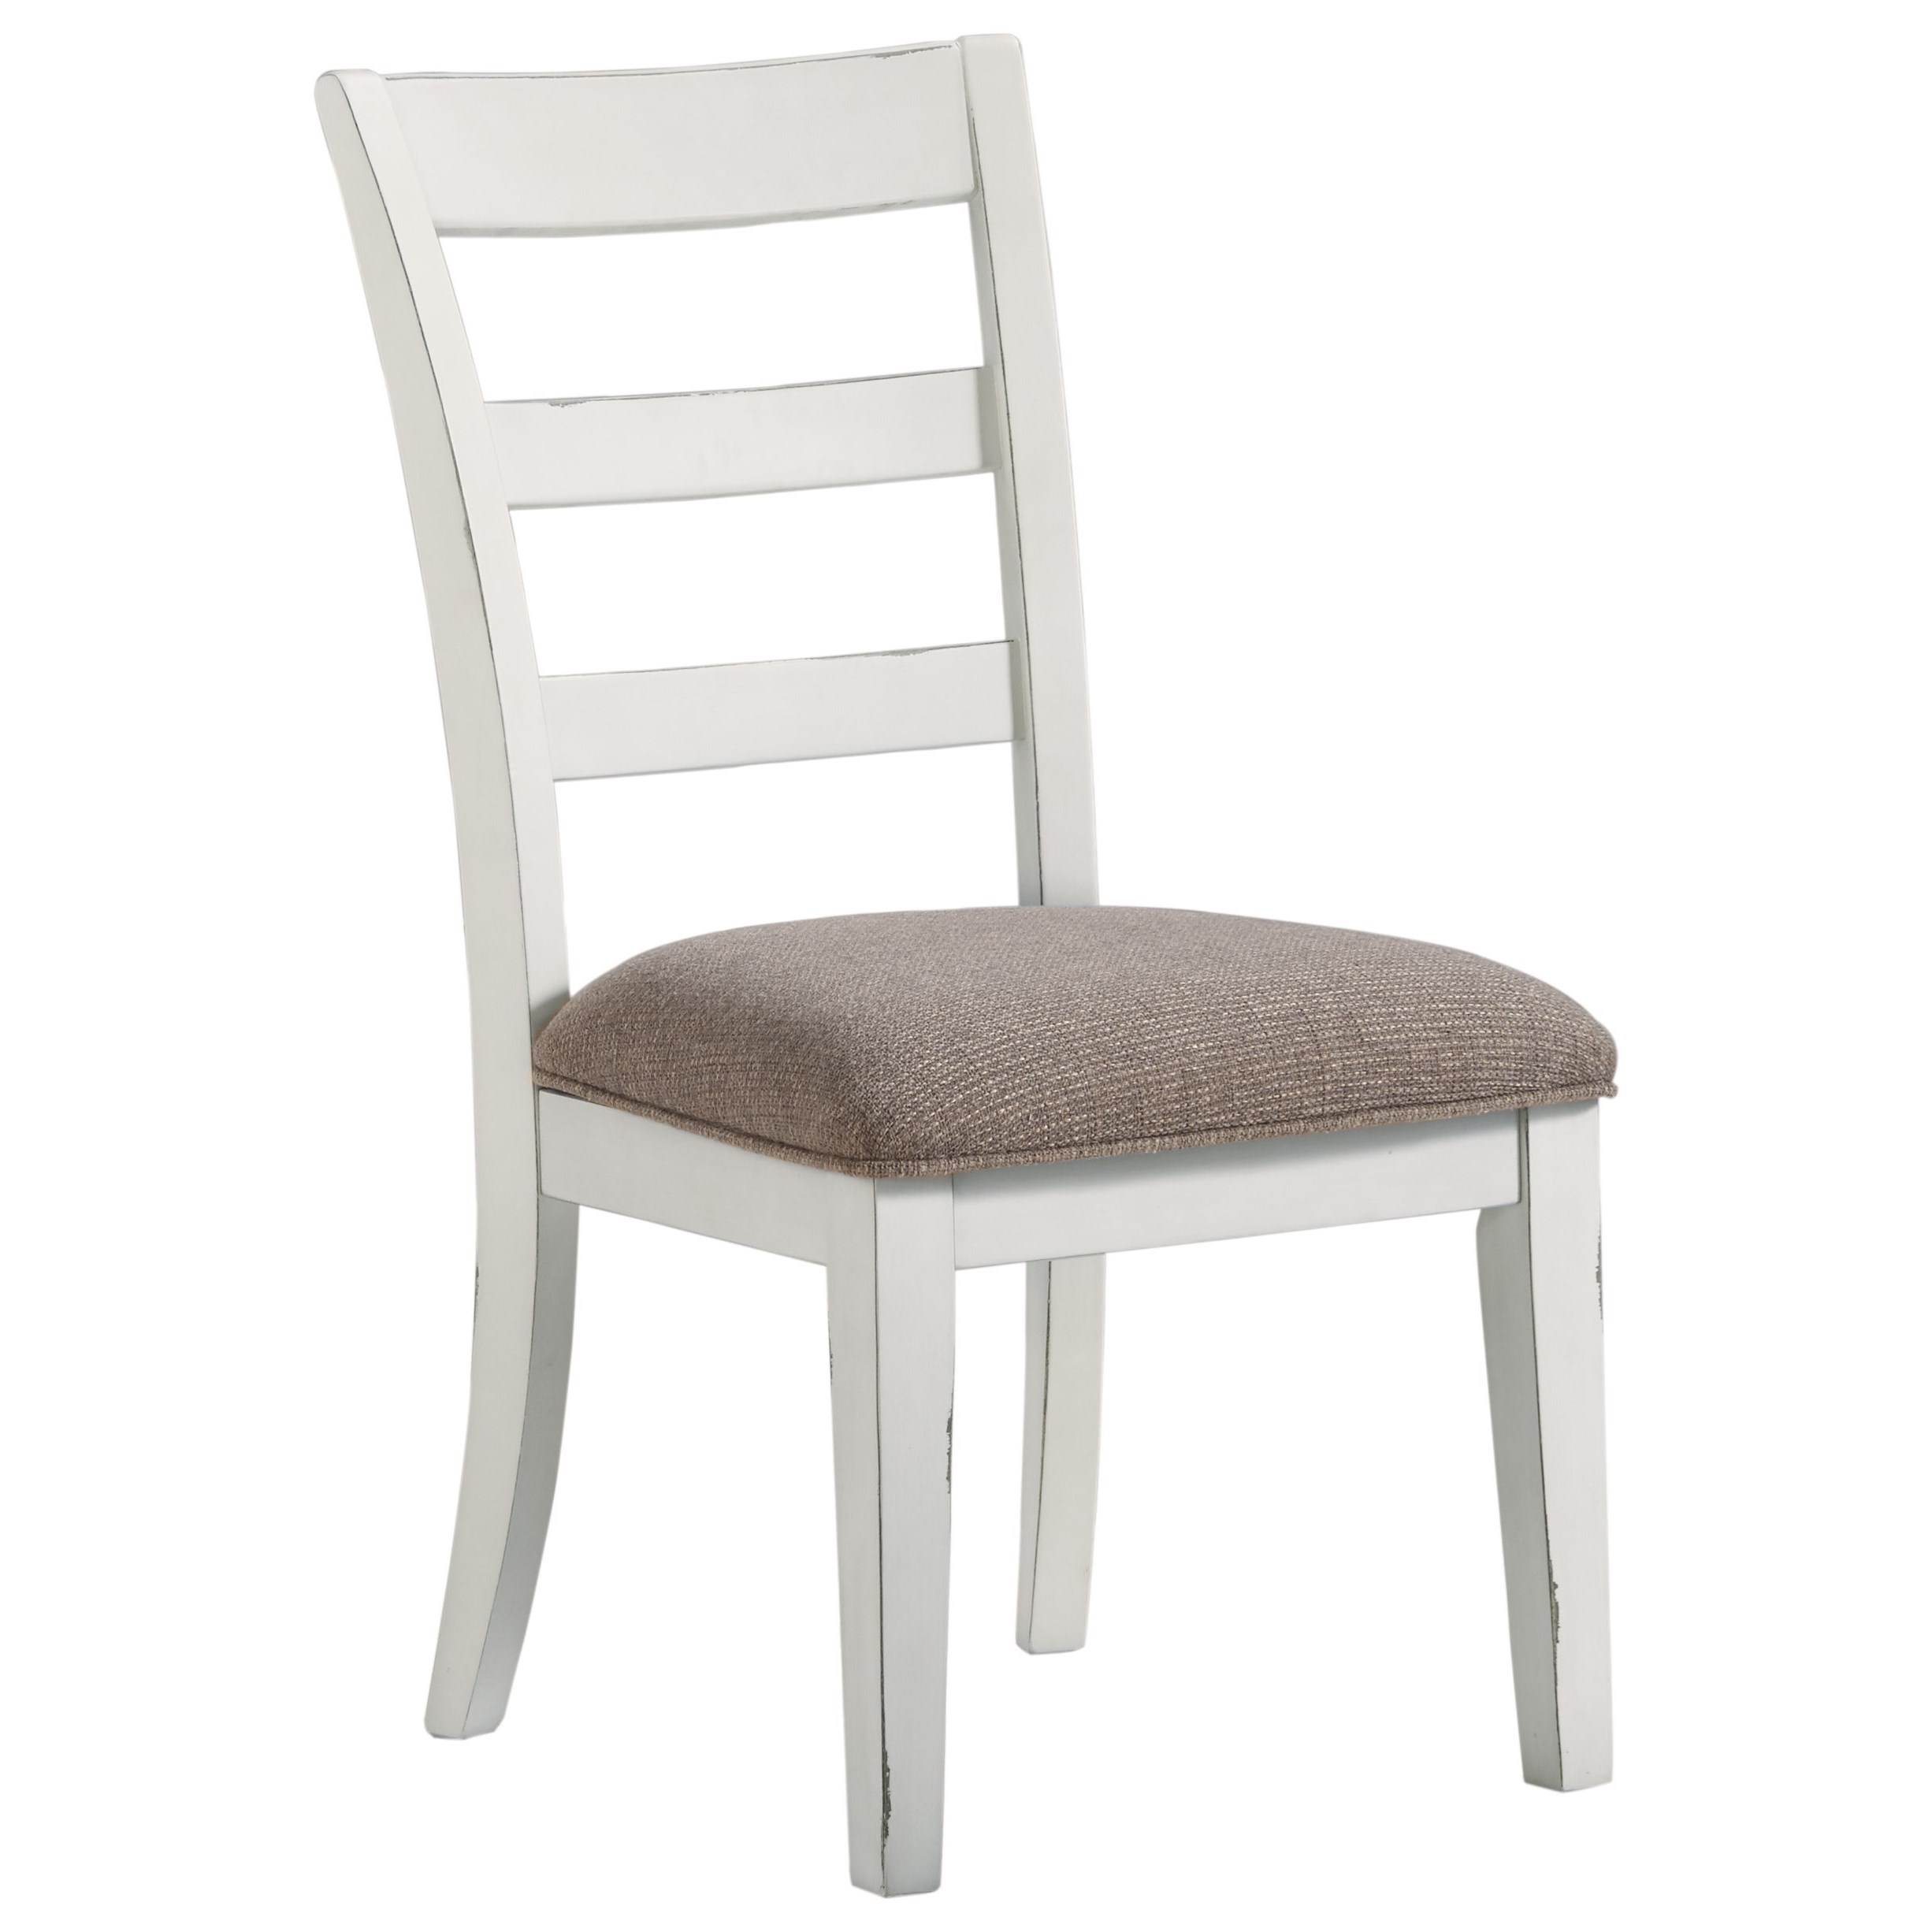 Signature Design by Ashley Stownbranner Dining Upholstered Side Chair - Item Number: D739-01